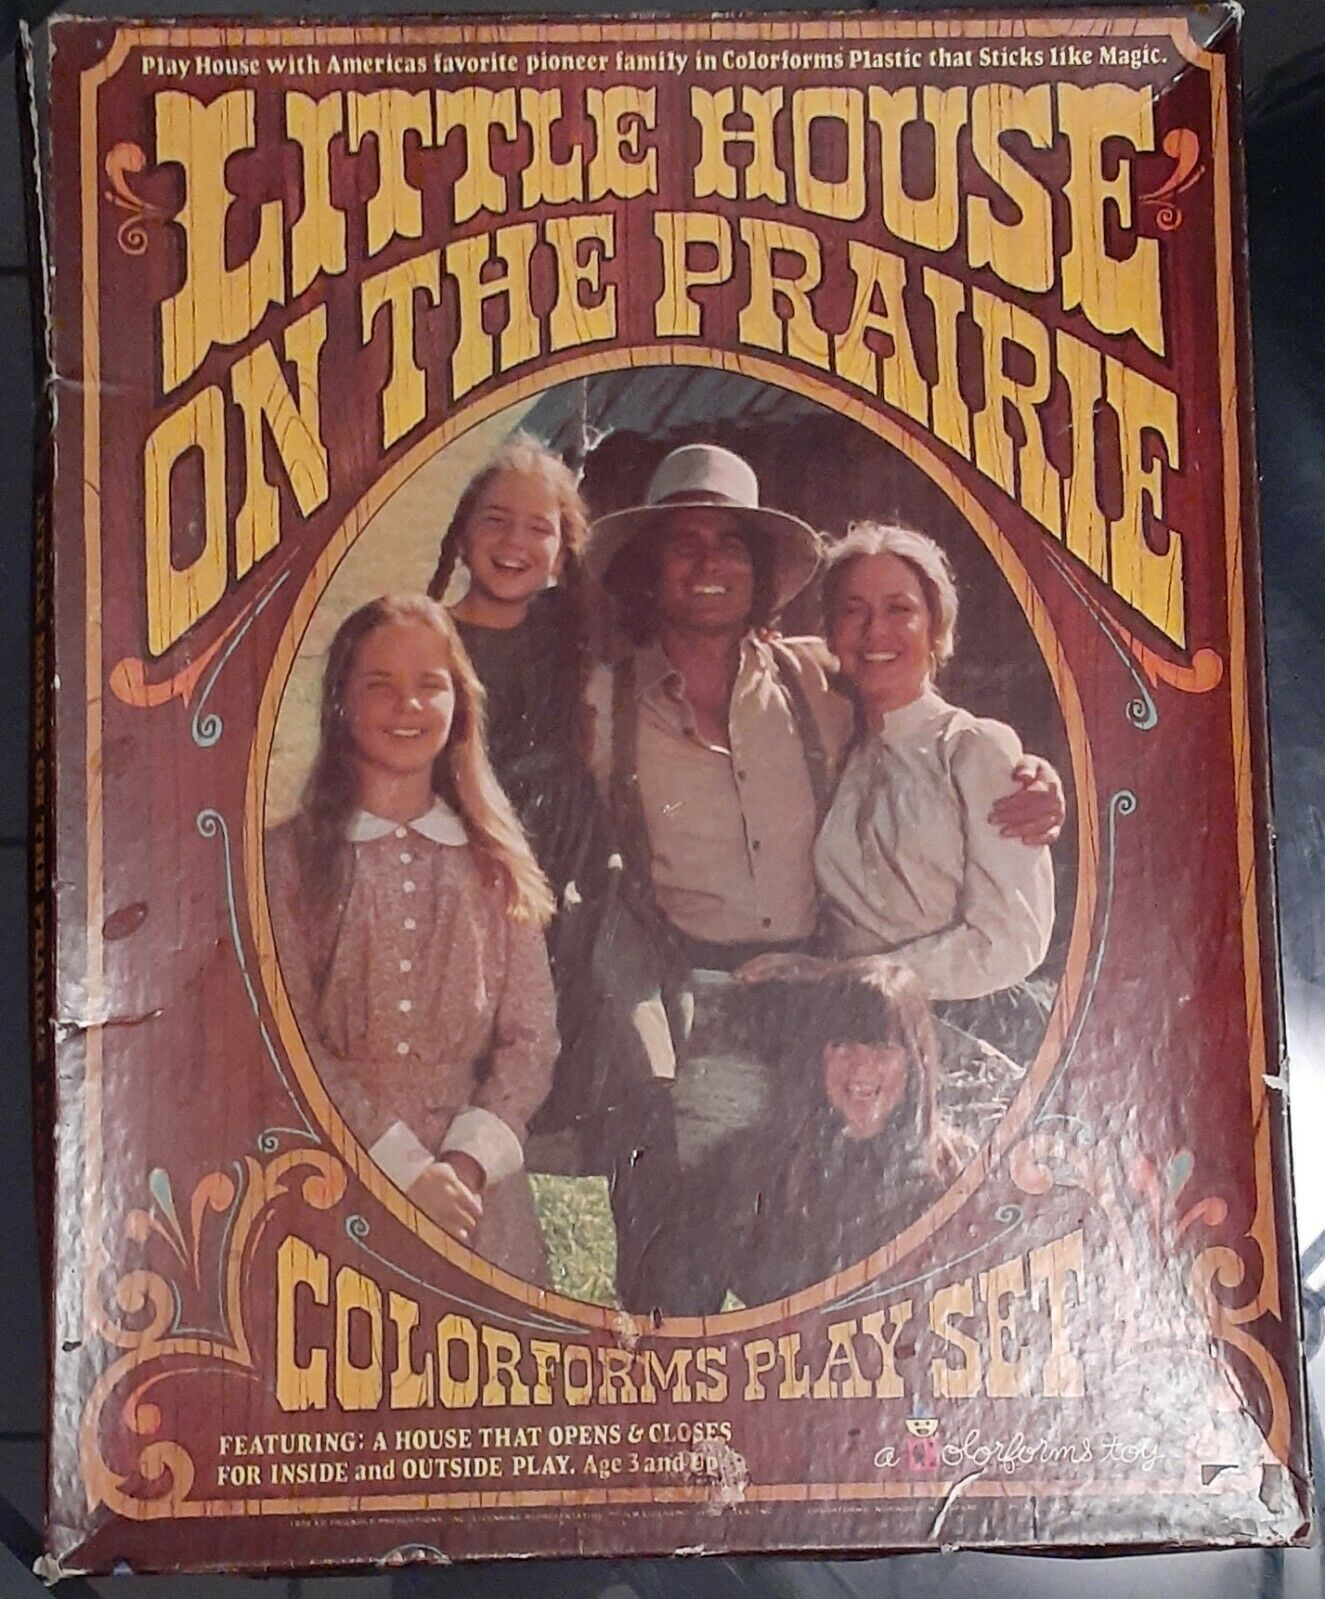 Little House on the Prairie Colorforms - 5 Awesome Things on eBay